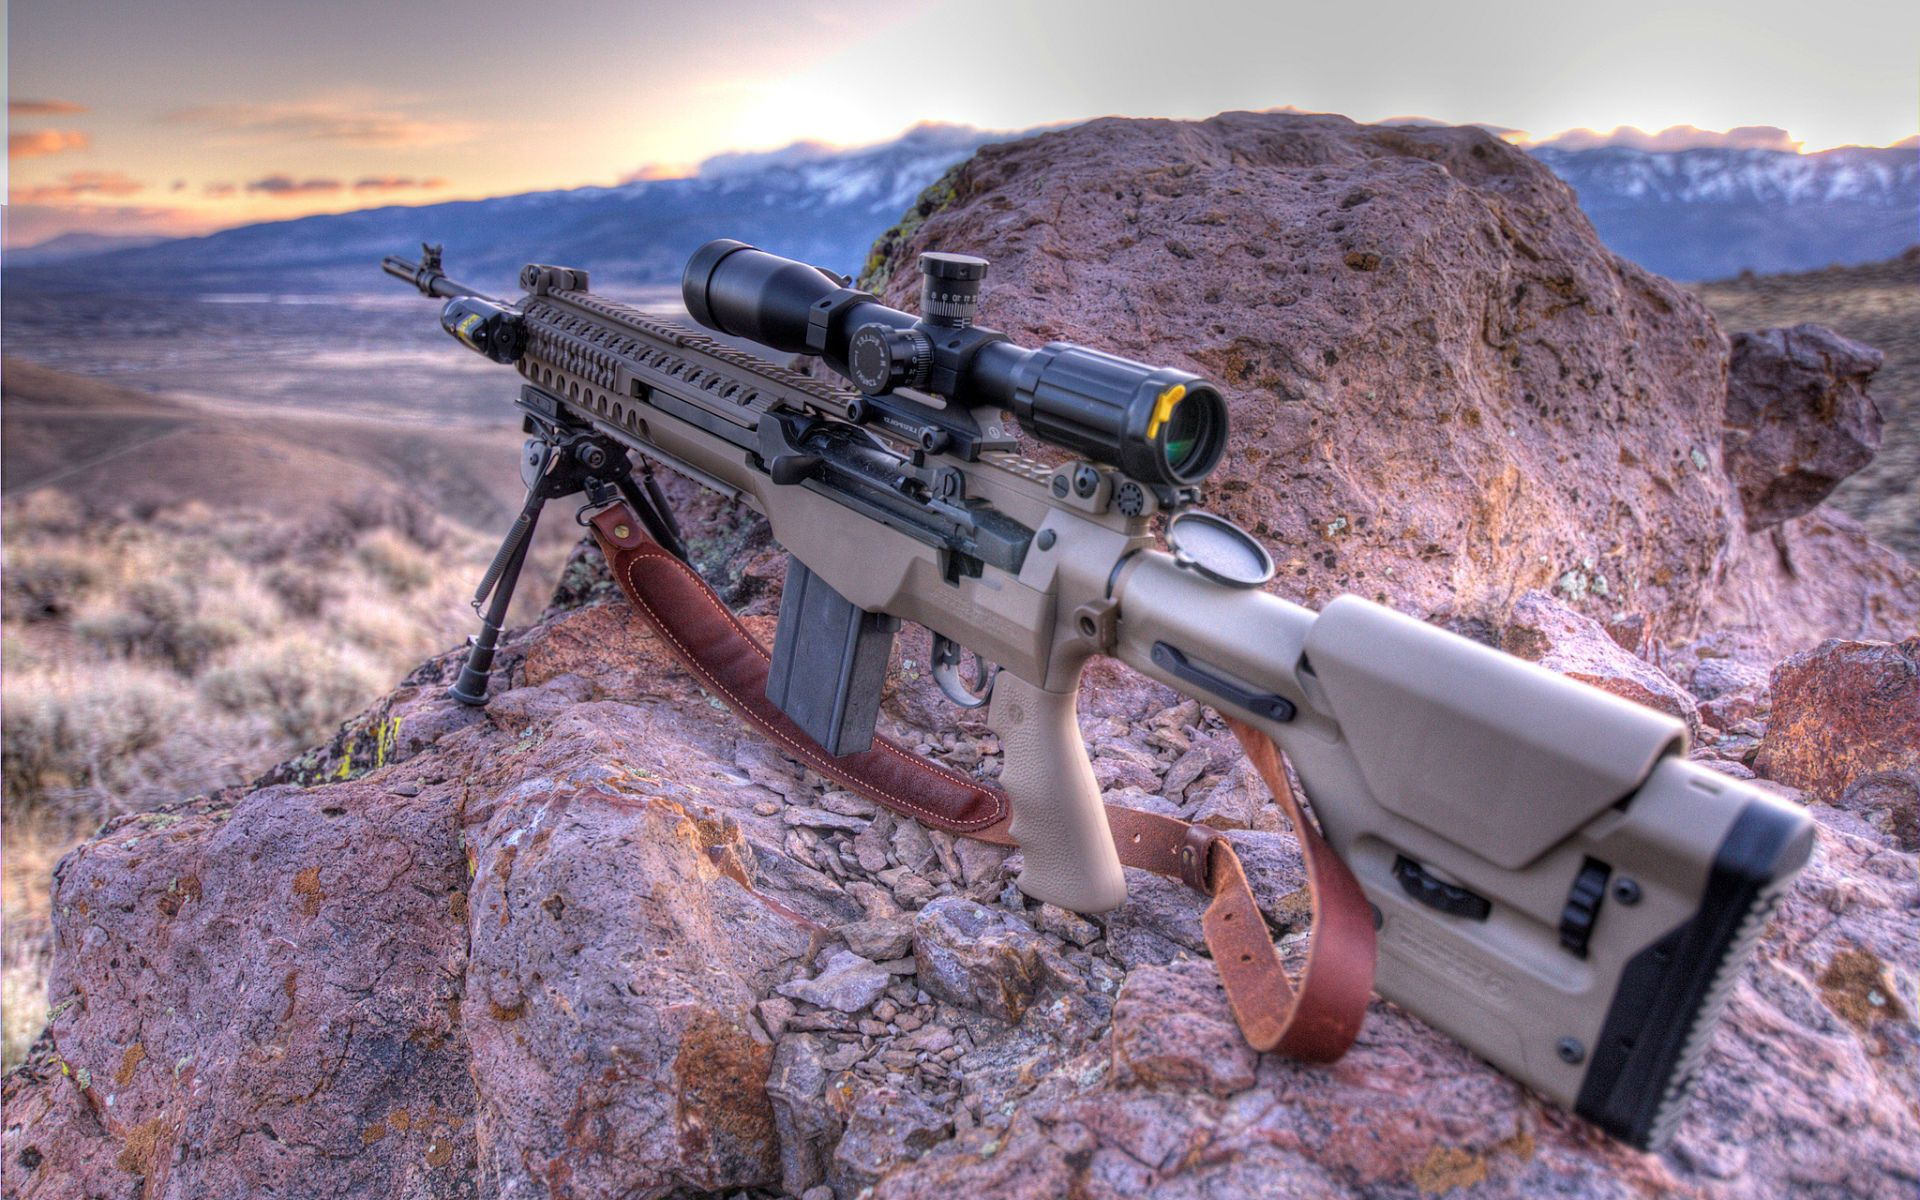 Download Free HD Guns Wallpaper Offered By Webgranth Choose Perfect For Your Desktop